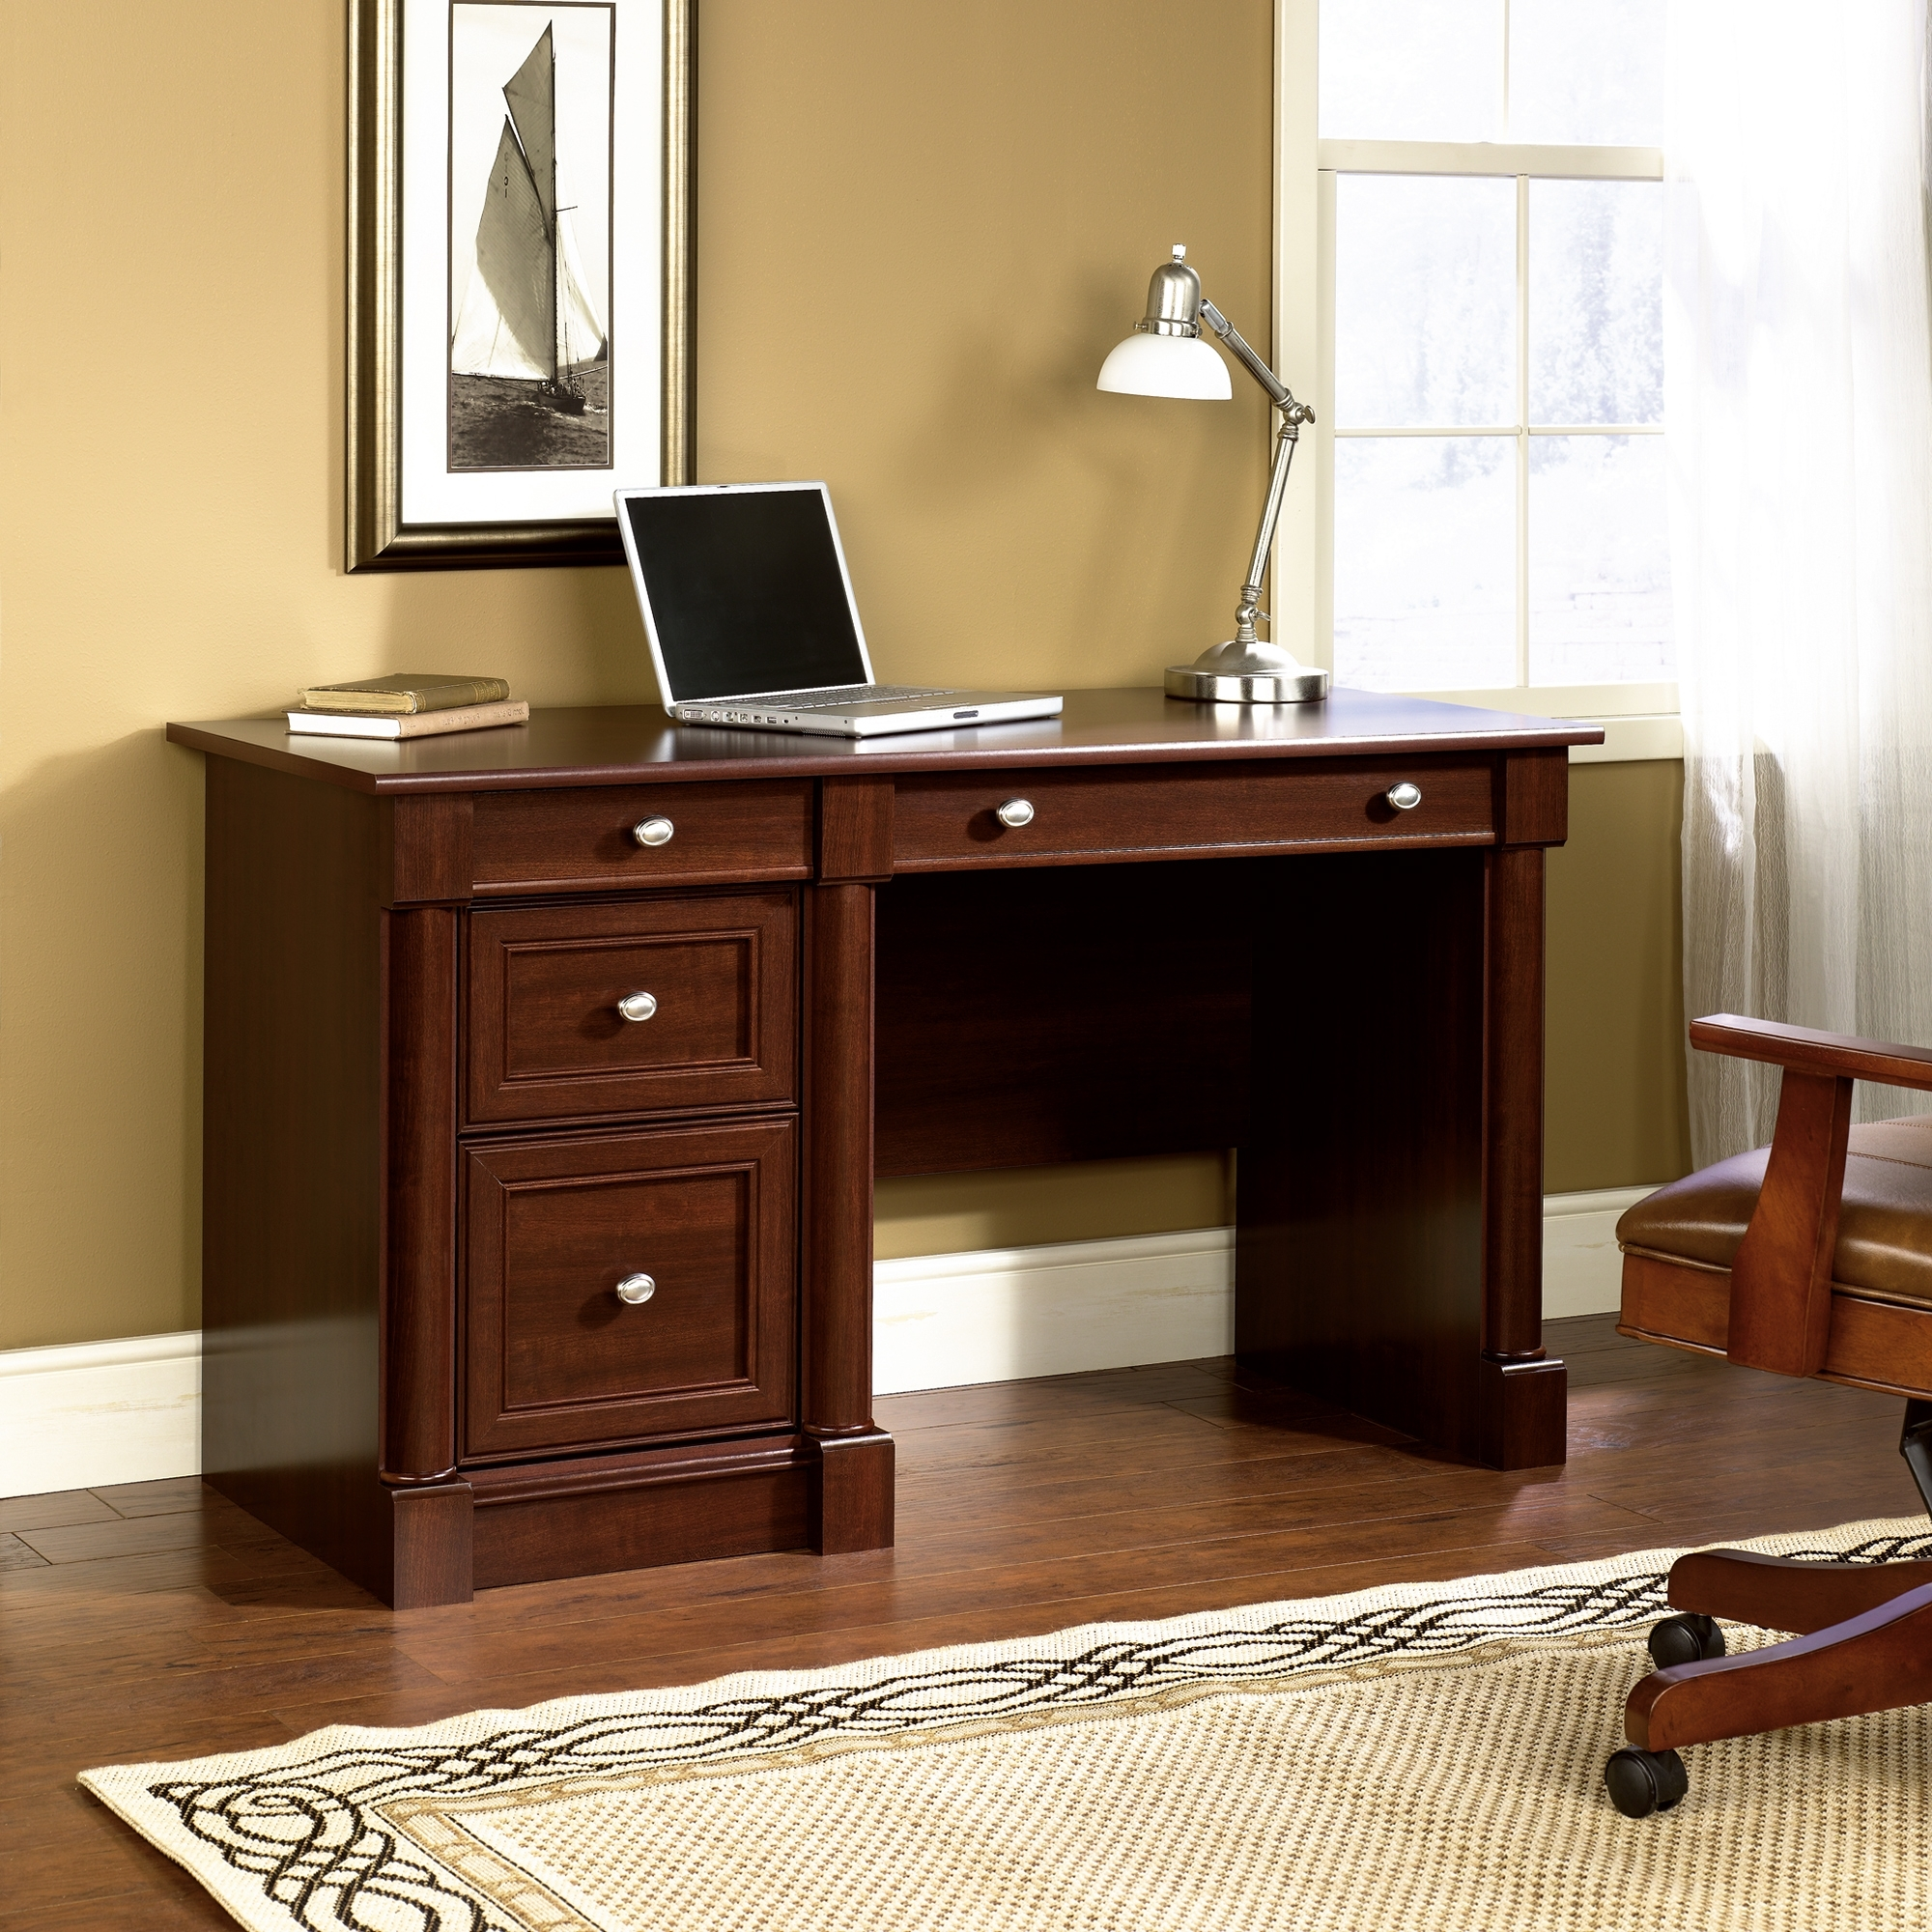 Most Popular Furniture : Cheap Small Computer Desk Wicker Computer Desk Desktop In Brown Computer Desks (View 12 of 20)